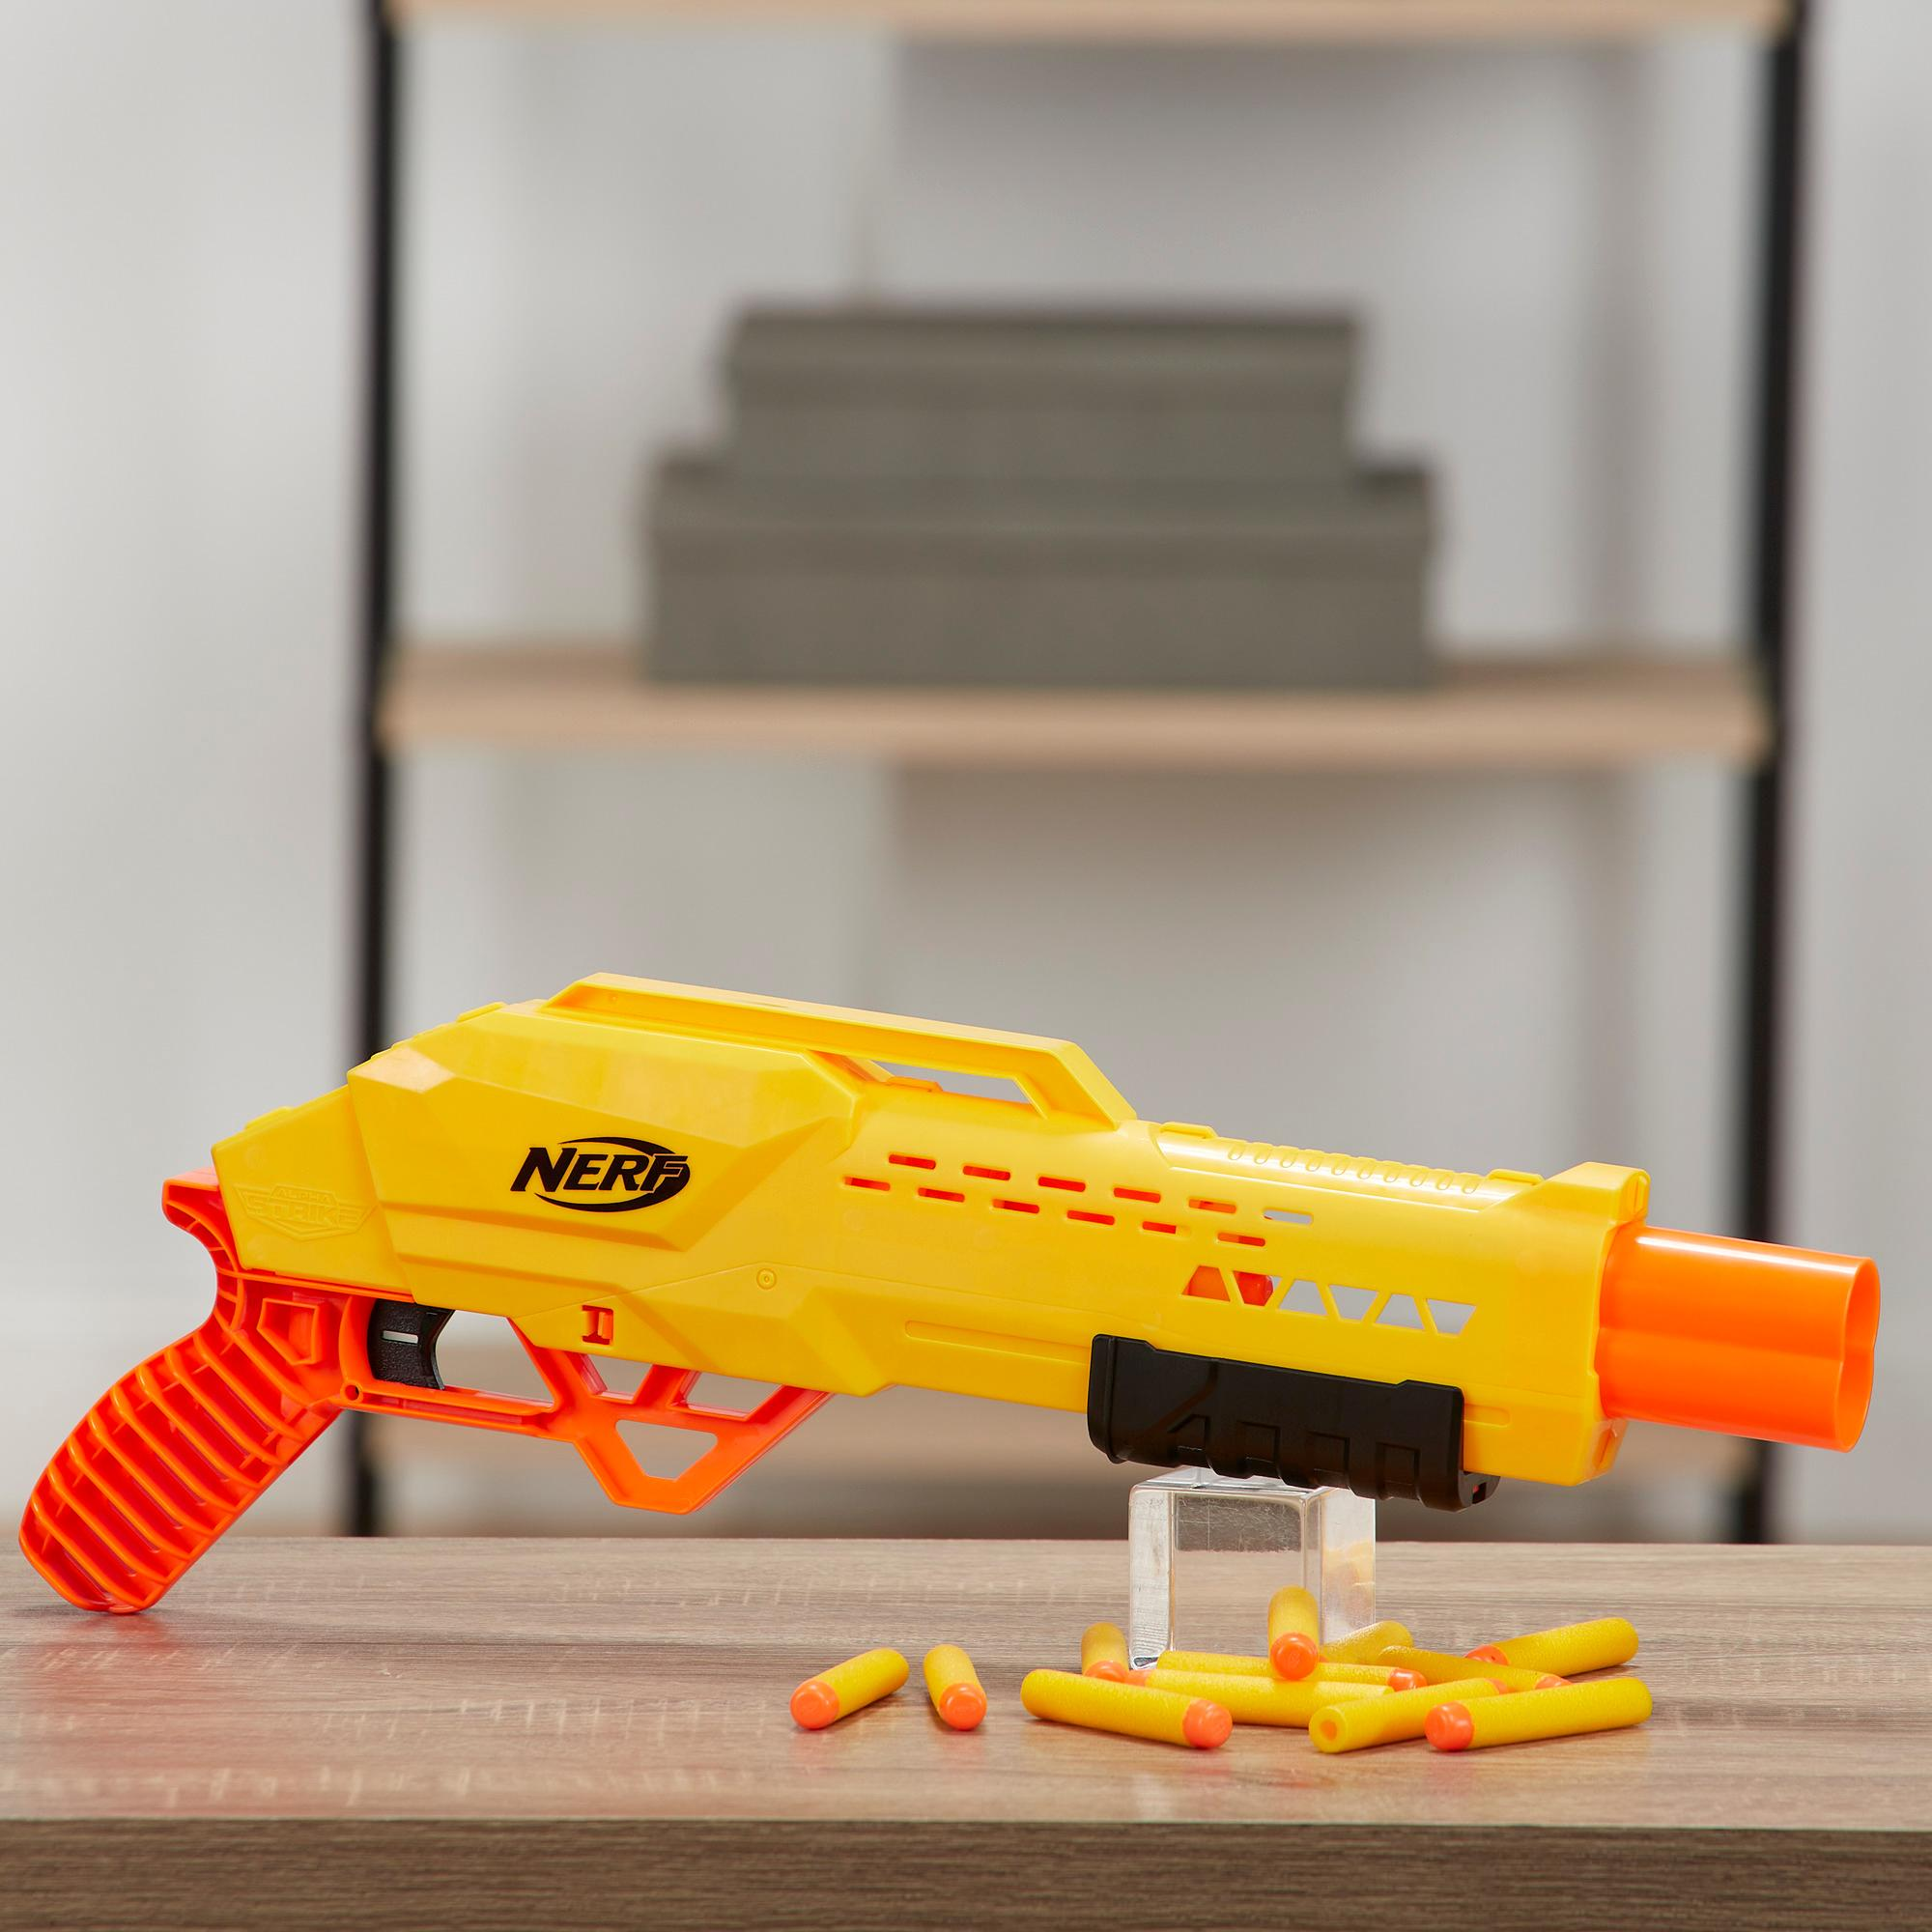 Tiger DB-2 Nerf Alpha Strike Toy Blaster